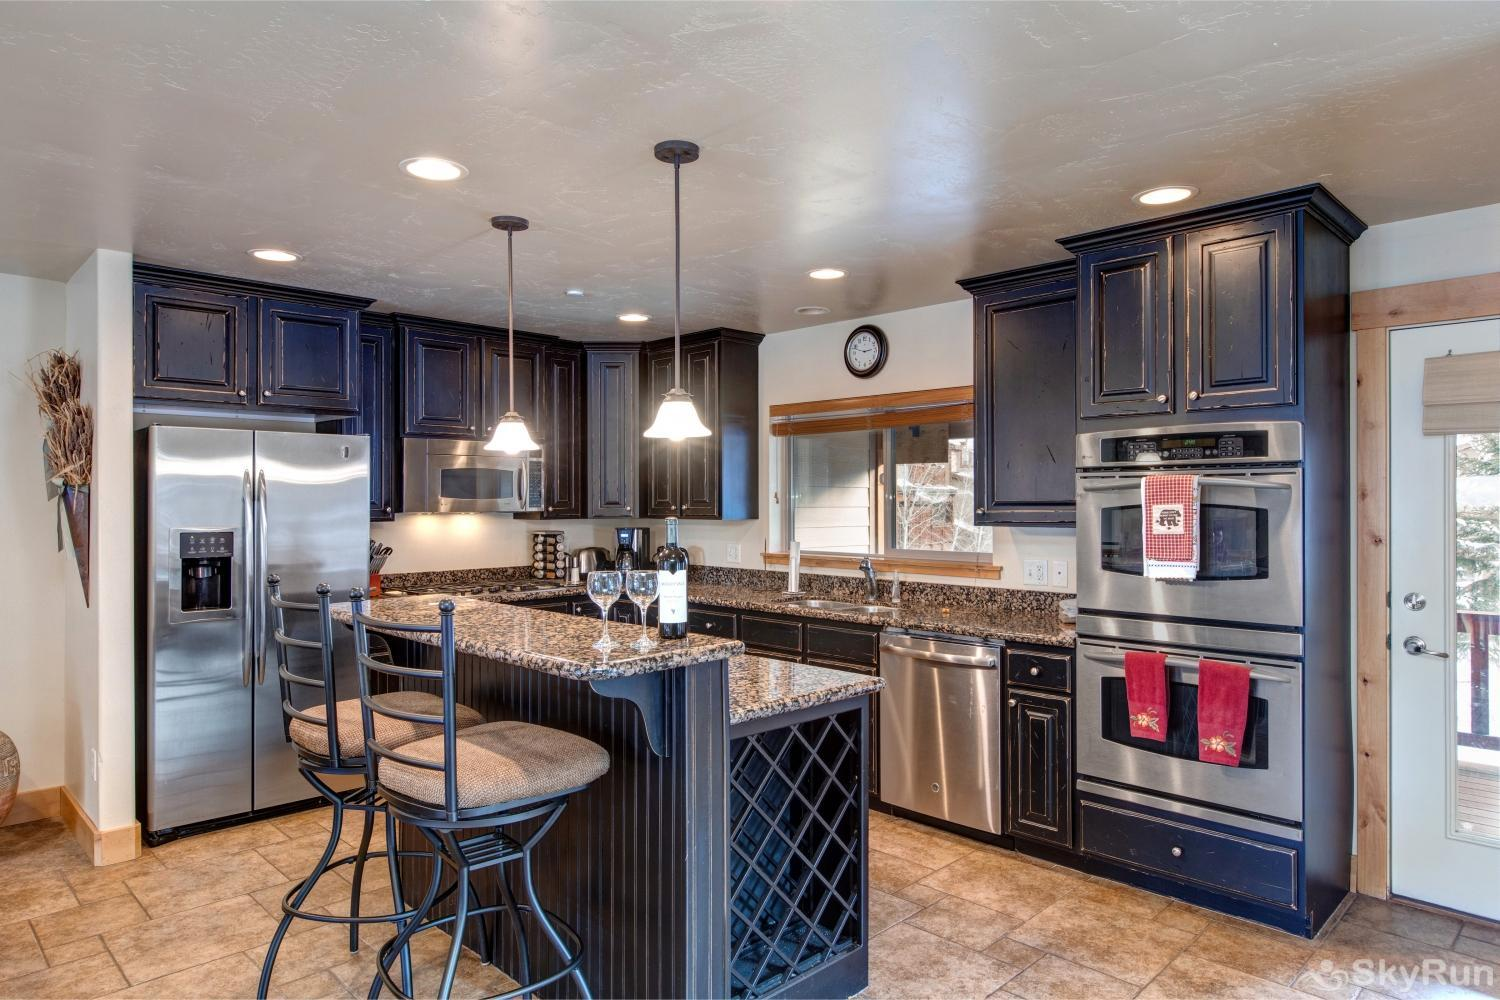 Luge Lane Luxury 5452 Stainless Steel Appliances Kitchen